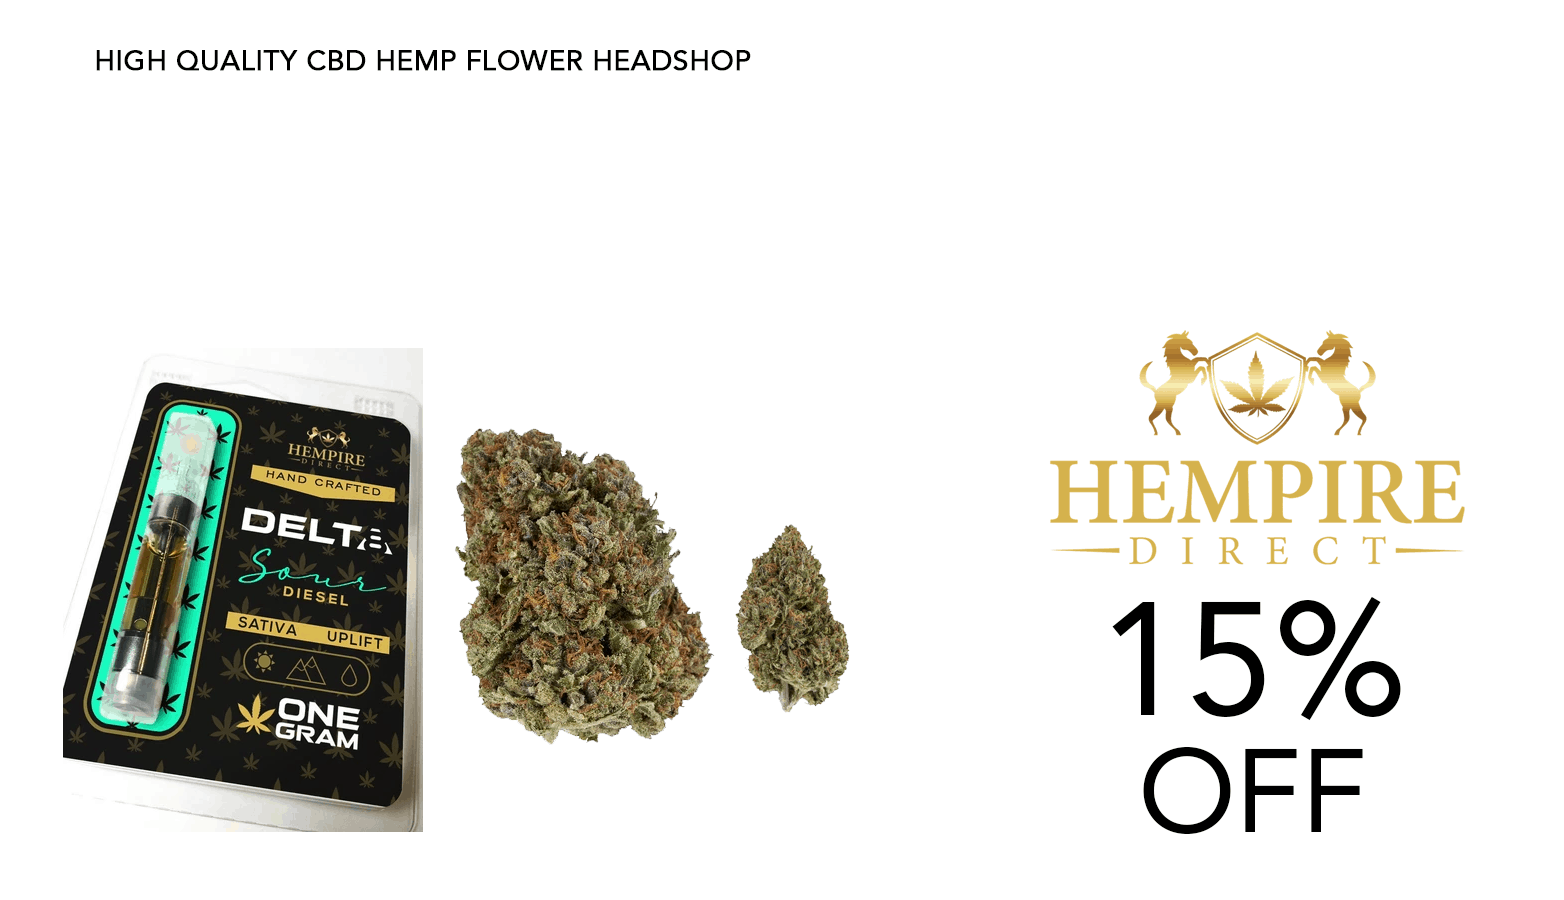 Hempire Direct CBD Coupon Code 15 Percent Off Discount